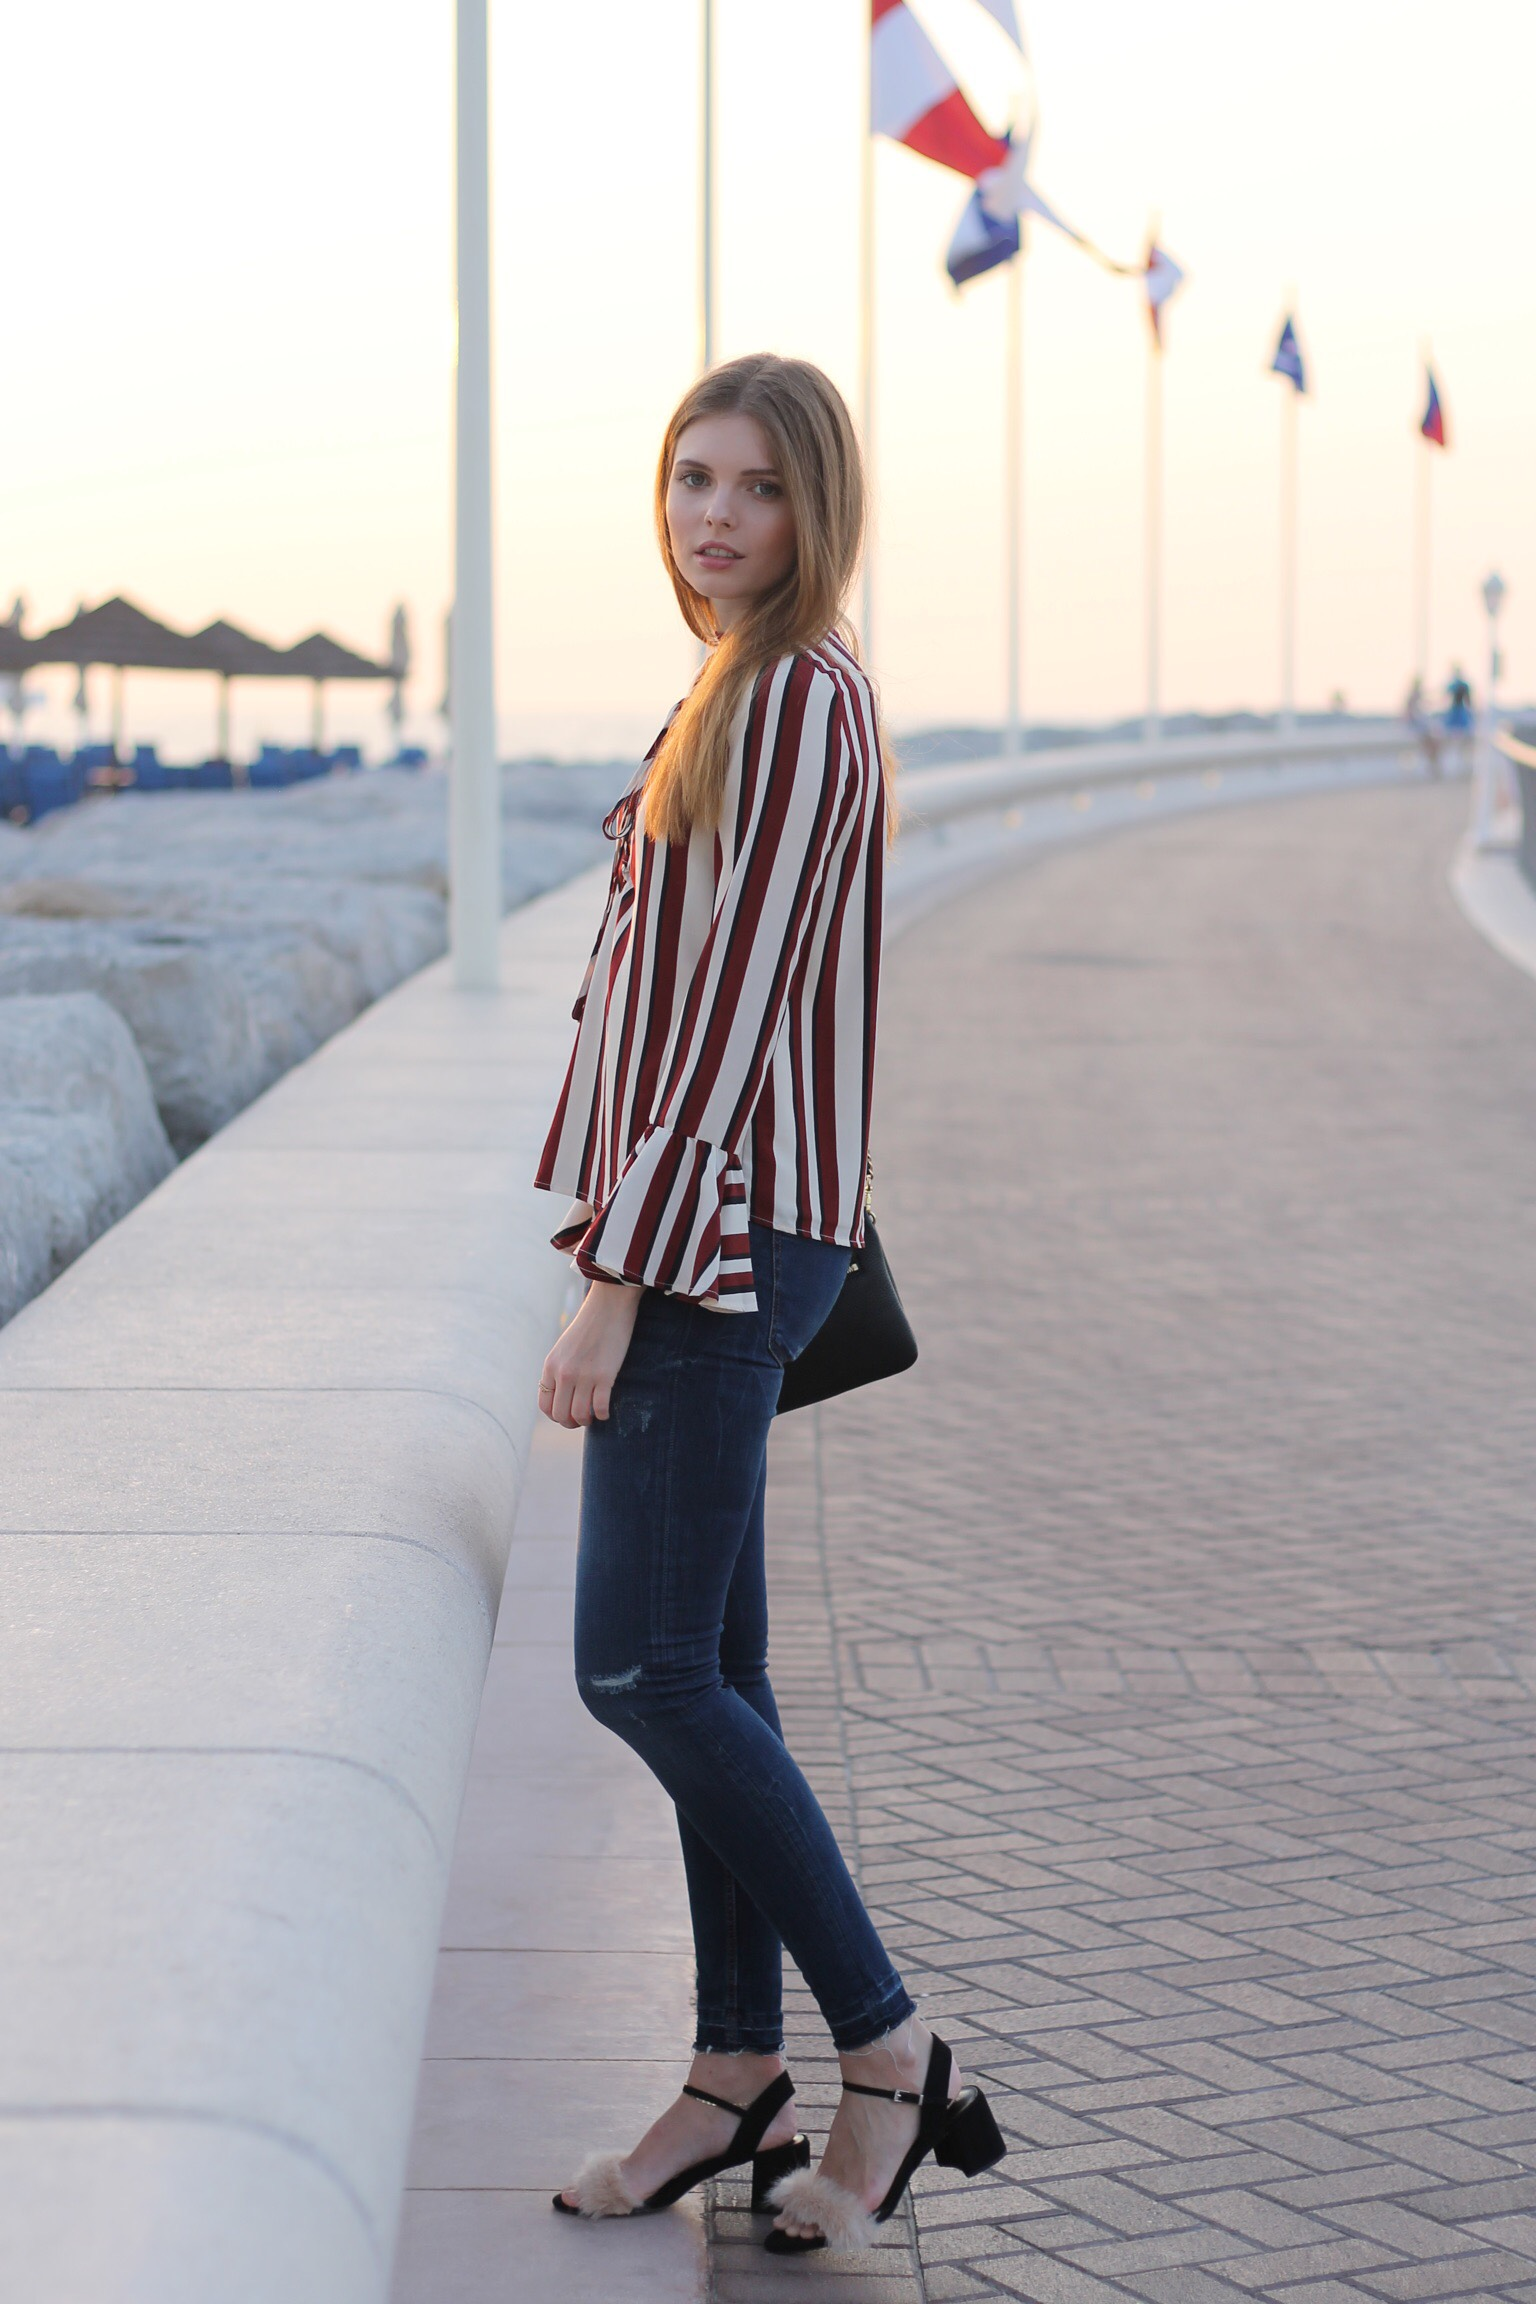 file4kopie - STRIPED BLOUSE OUTFIT IN DUBAI